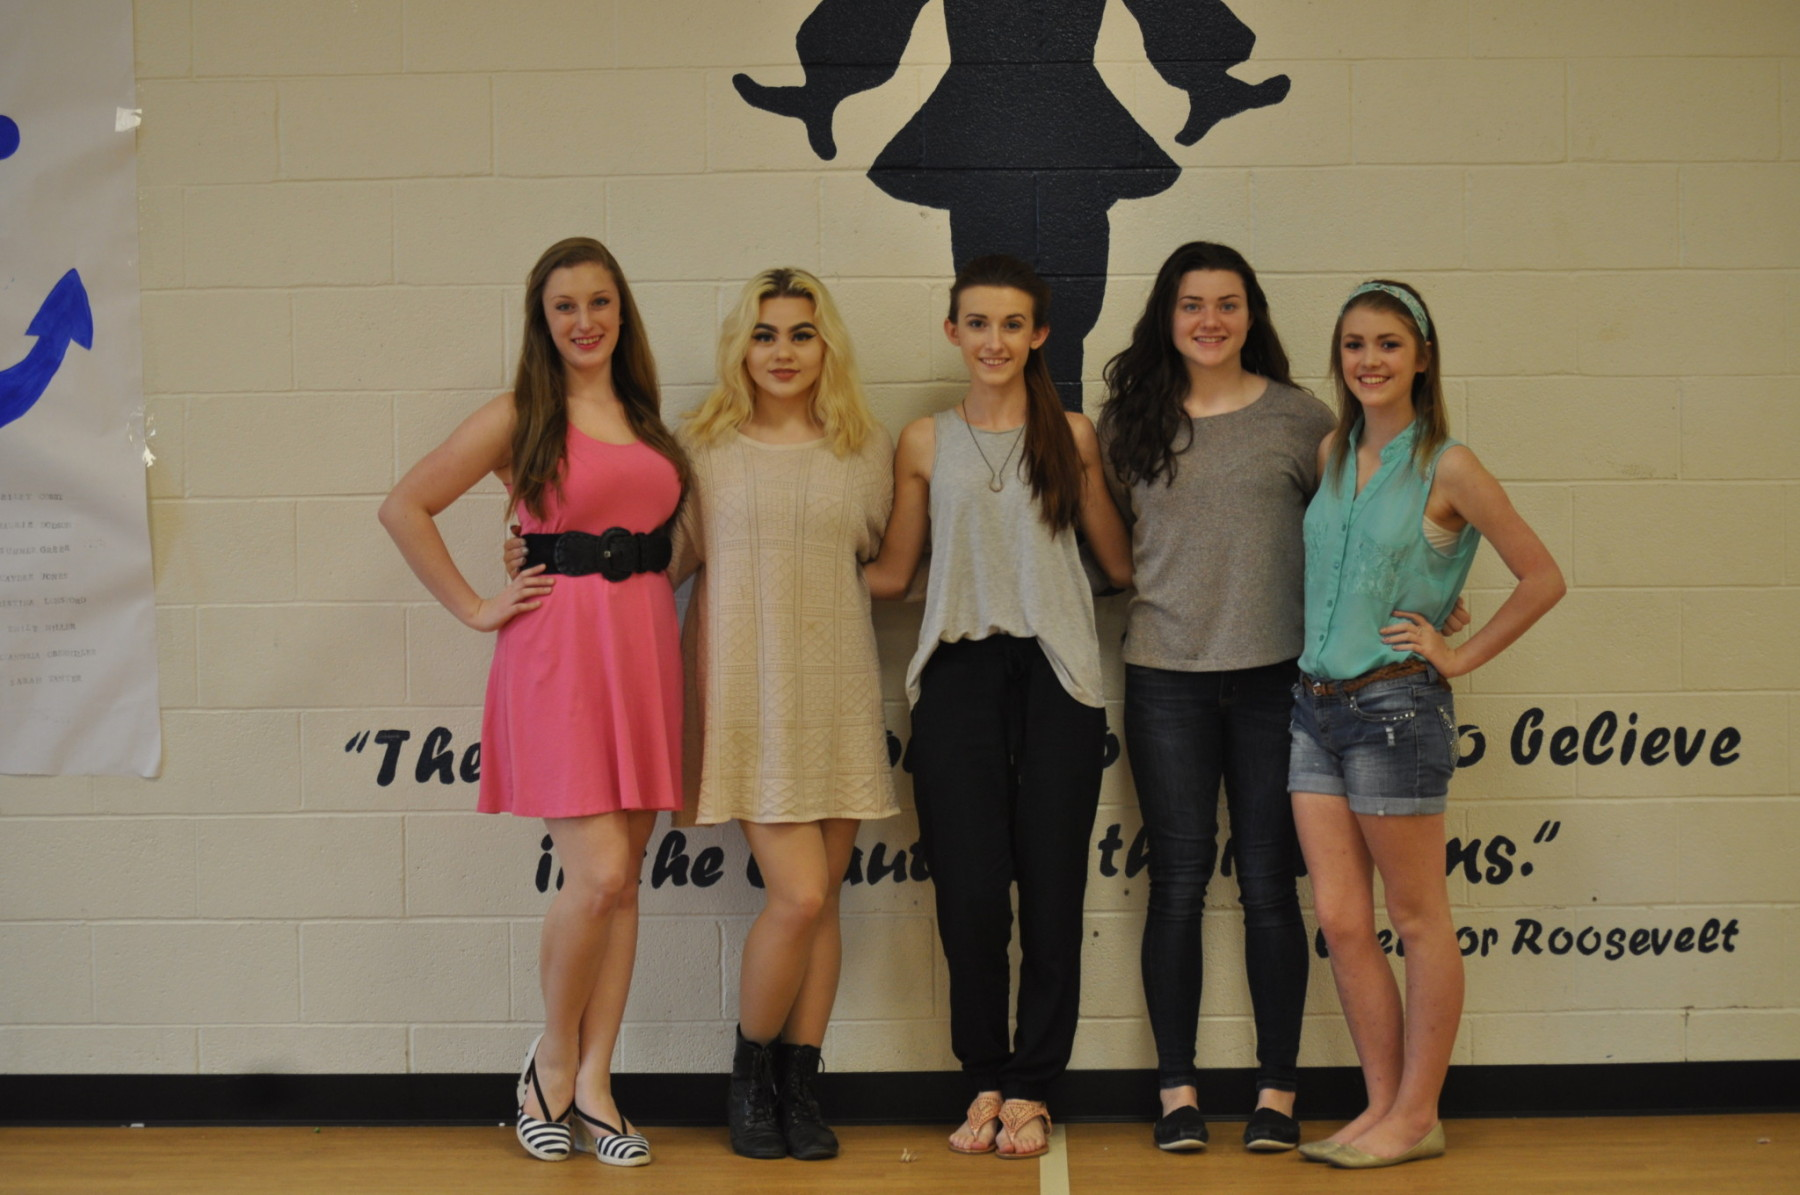 The 2015-2016 SHS Stings officers are (l-r) Elizabeth Afeman, Allison Balder, Shelby Sult, Cassidy Balder and Maurie Dodson.